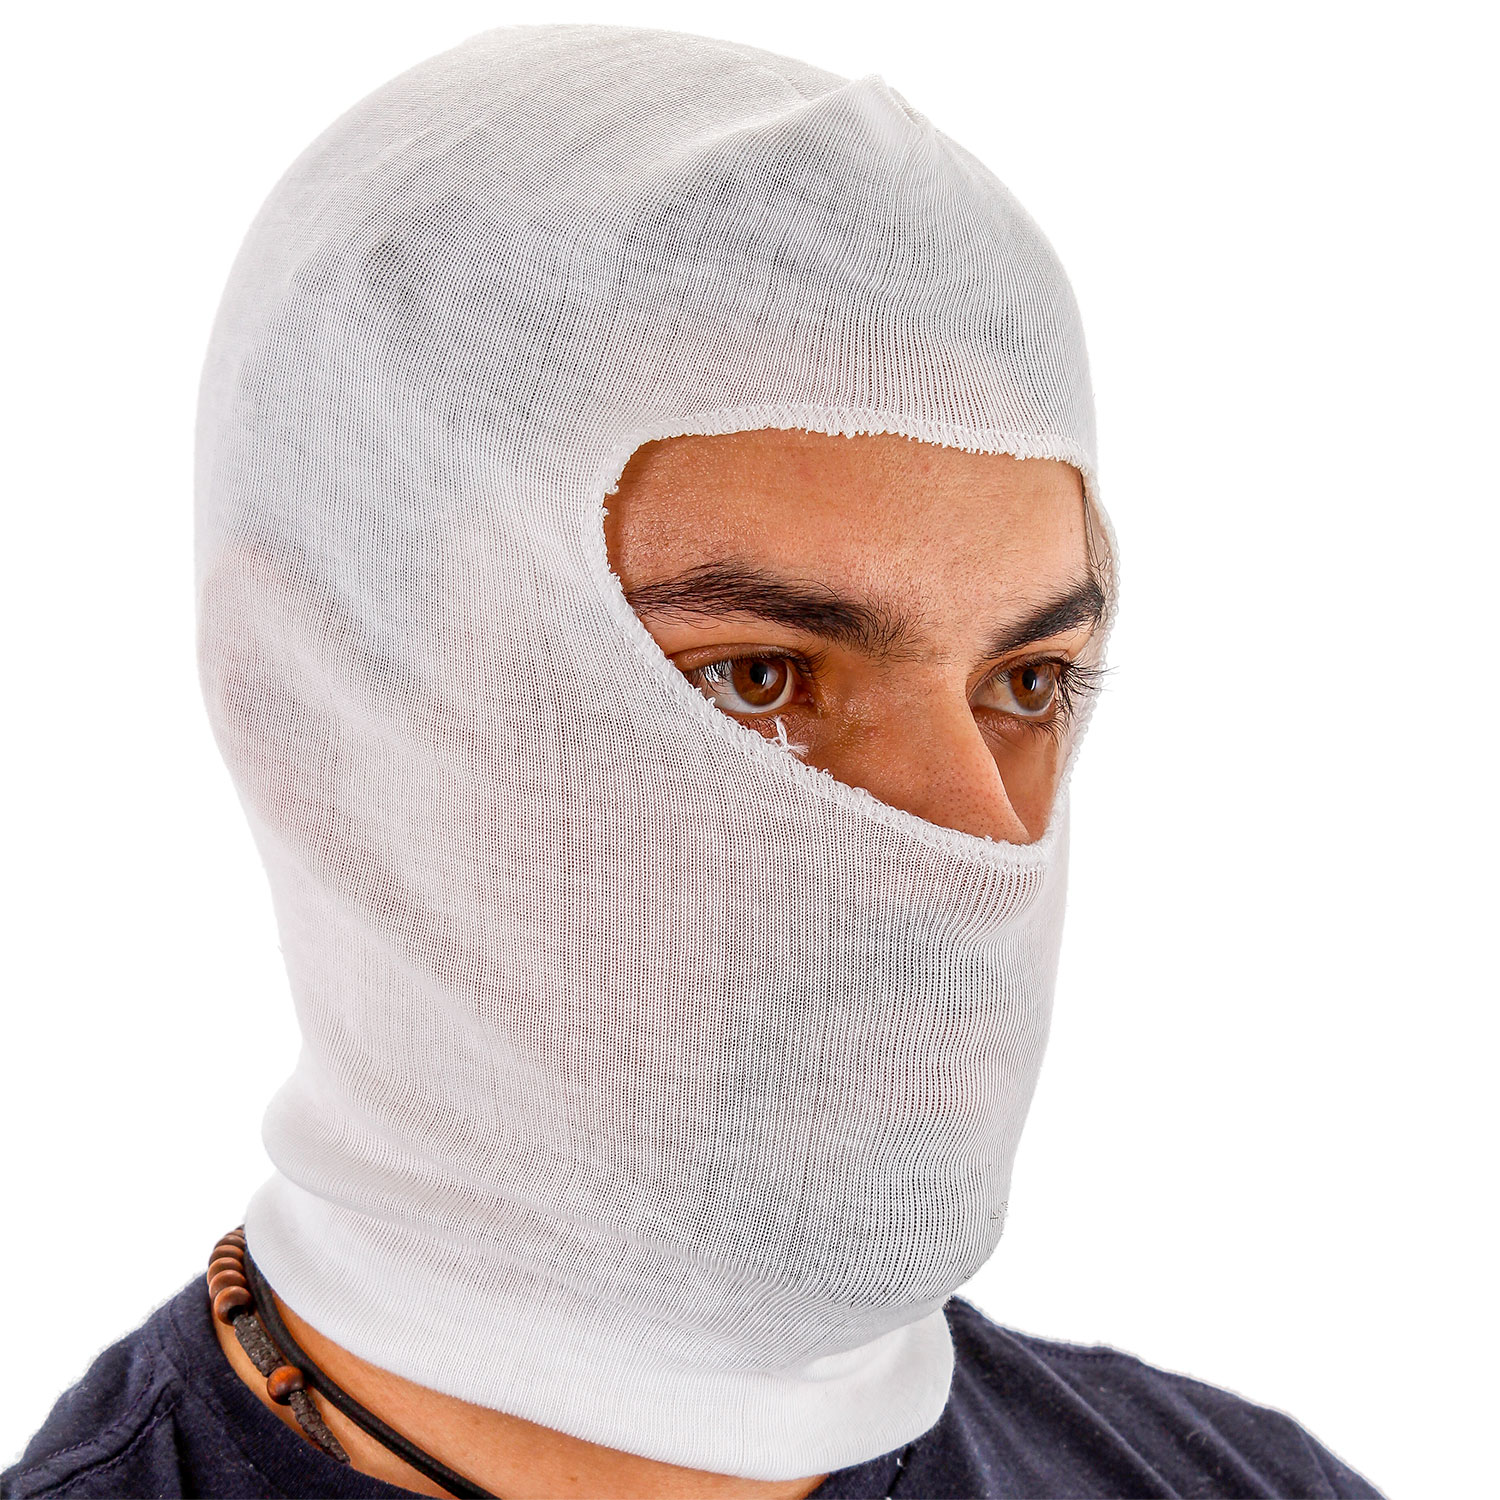 12 Painters Spray Socks, Stretch Cotton Head Hood Mask, Protect Face Neck Paint